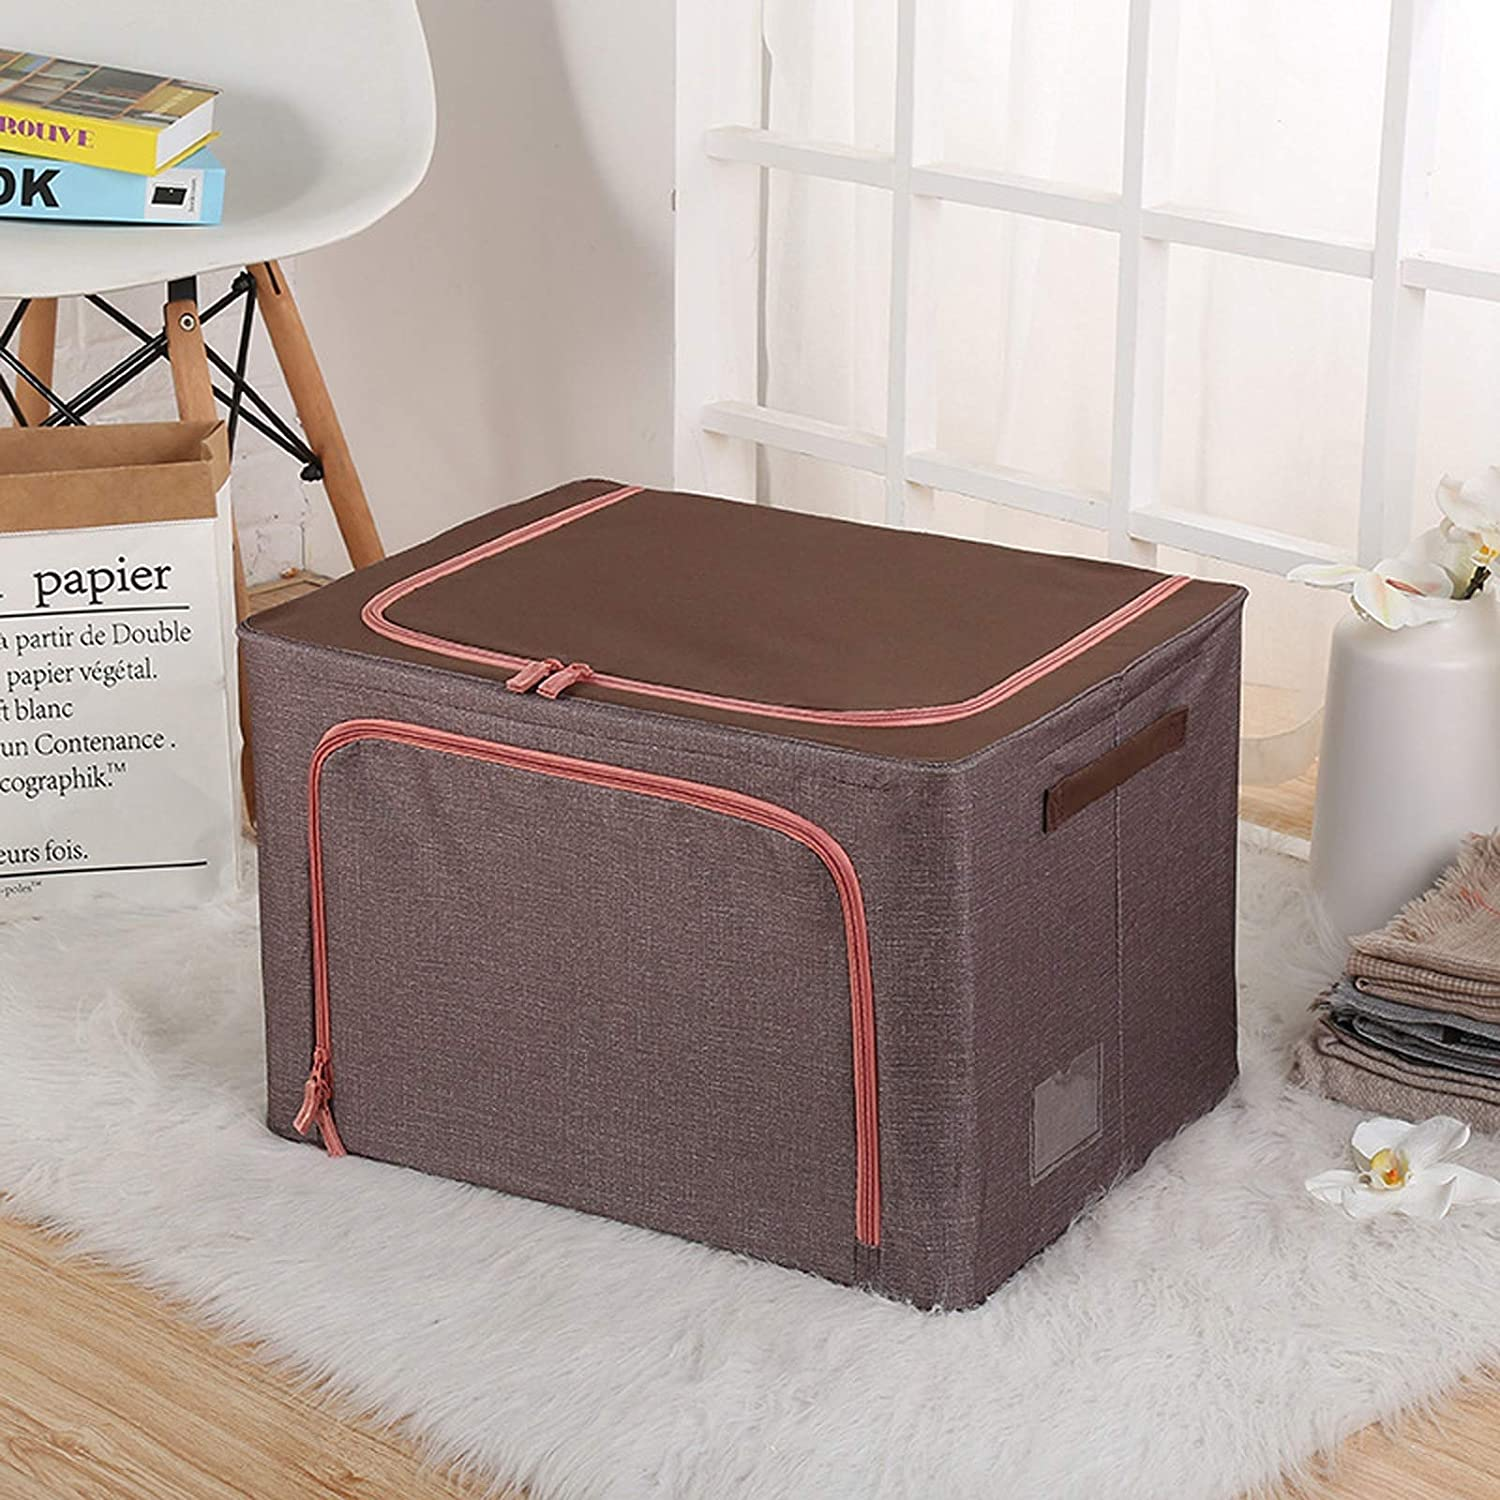 Large Foldable Storage Bin, 66L Oxford Cloth Steel Frame Clothing Storage Box with Lids and Zips, for Home Office Nursery Organiser Clothes Basket Containers,Style 1